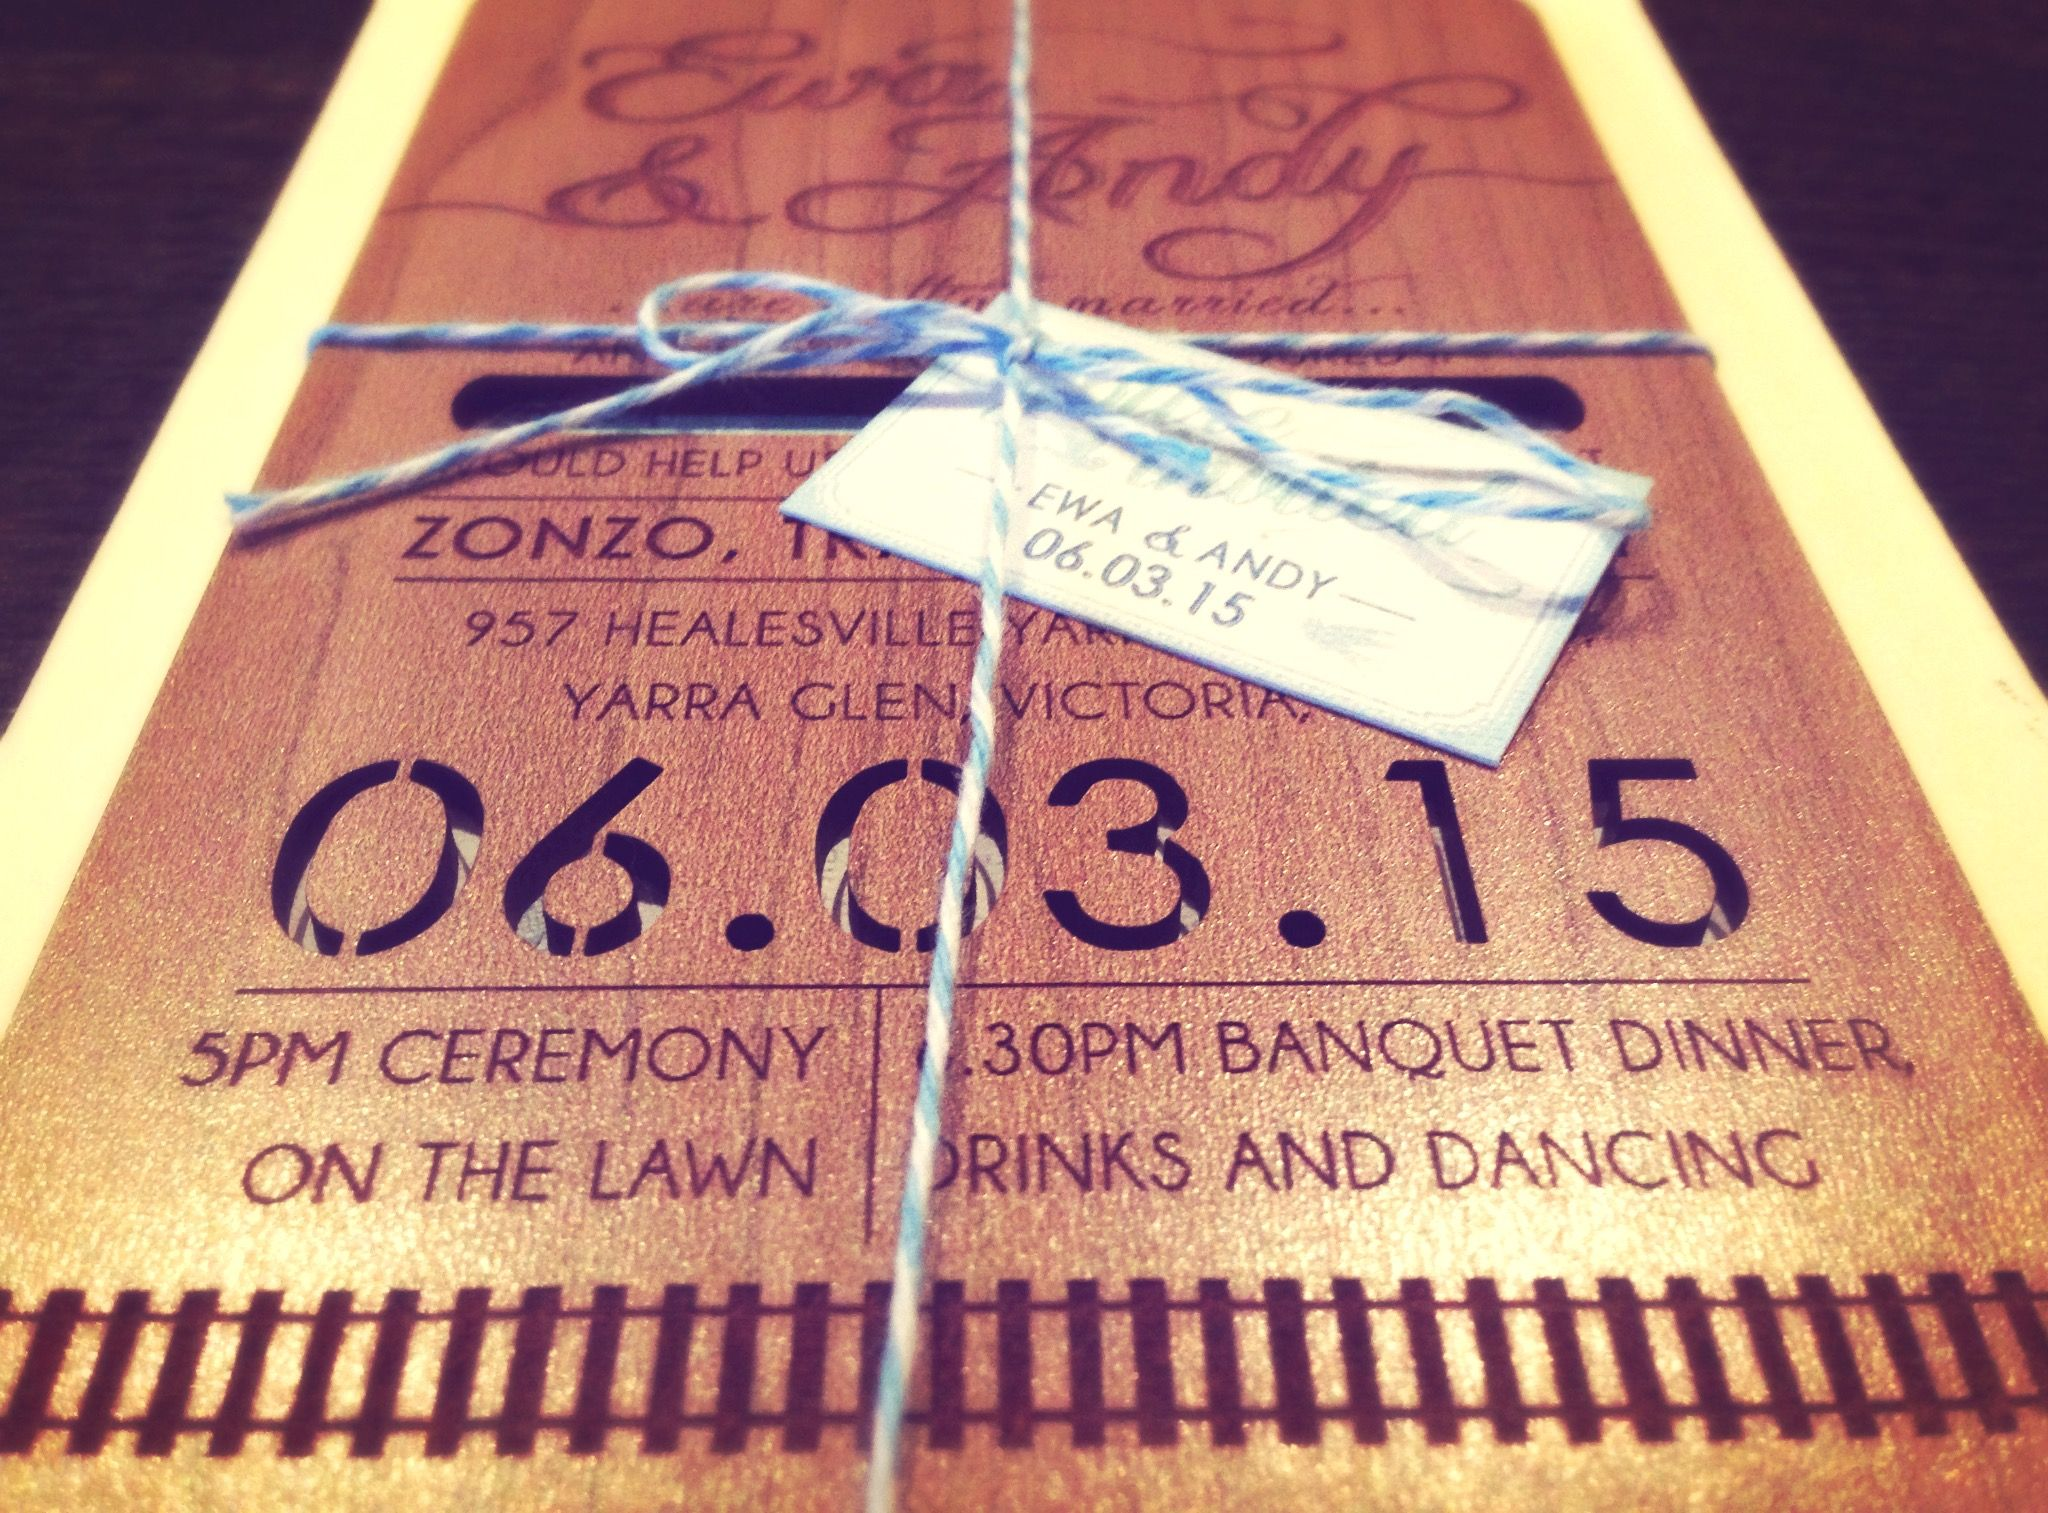 Laser cut wood wedding invitation set for winery wedding at an old ...